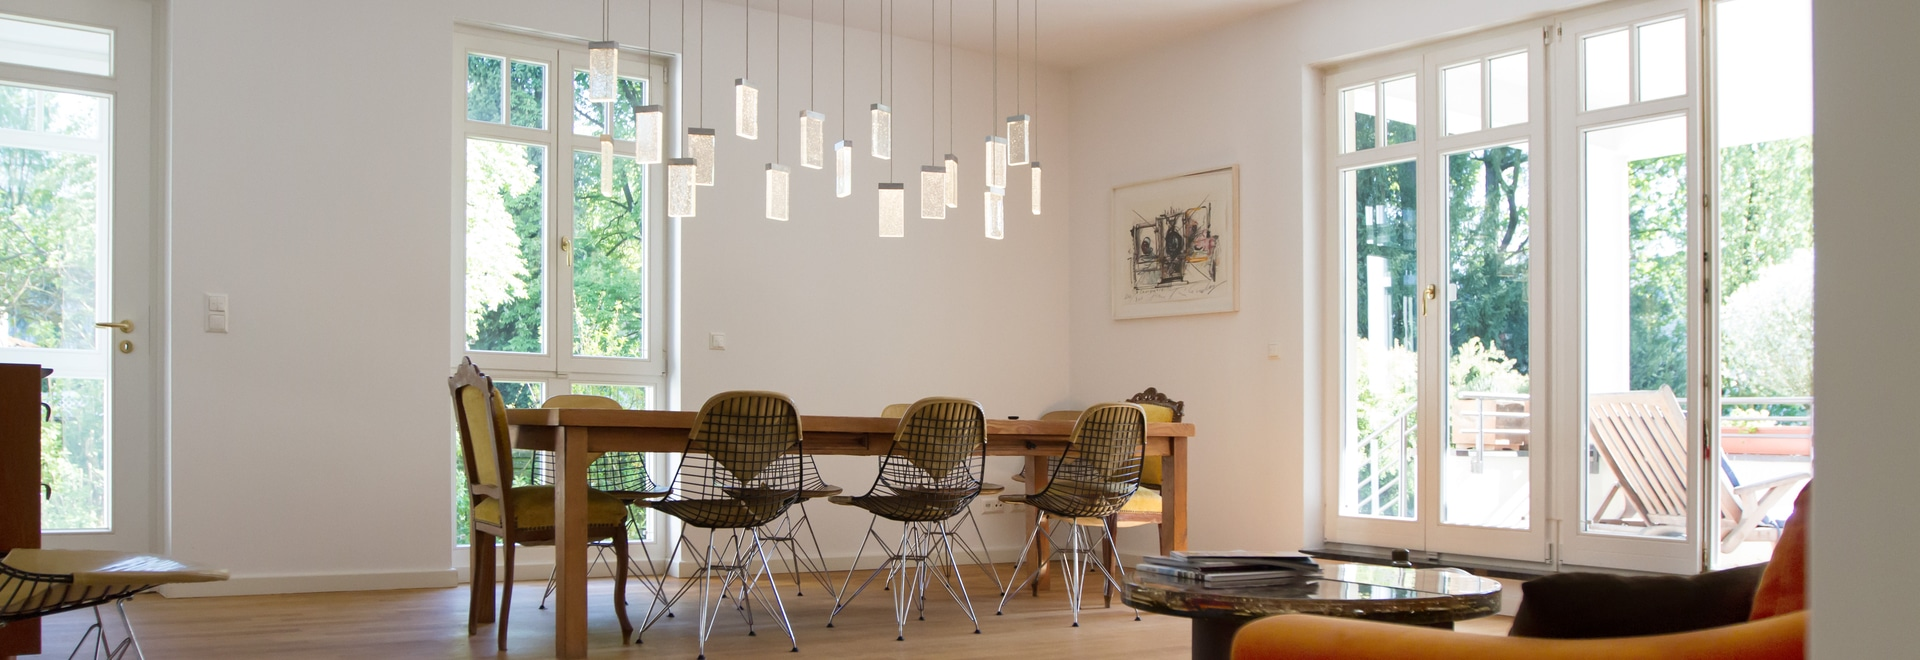 Canopy with 17 GRAND CRU pendants for the dining table. & Canopy with 17 GRAND CRU pendants for the living room table ...